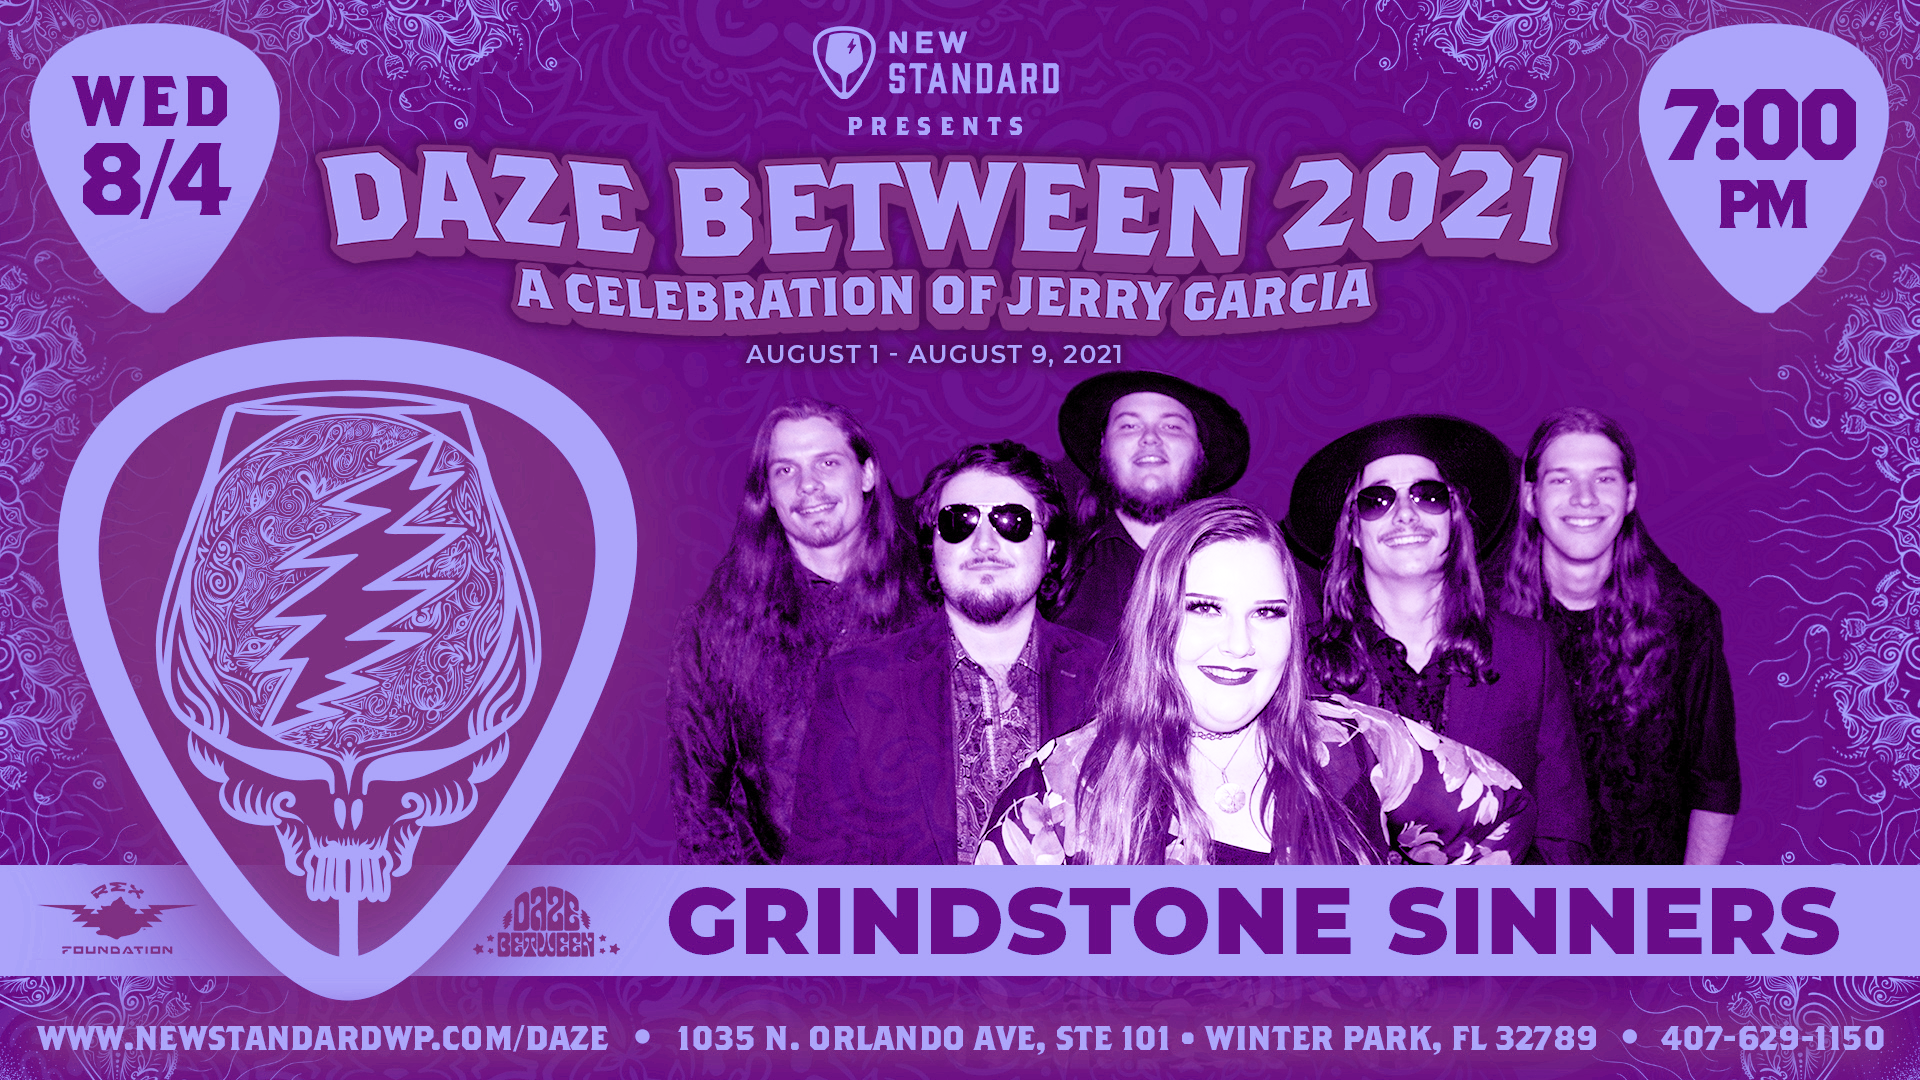 Photo for Grindstone Sinners - Live at The New Standard - Daze Between 2021 on ViewStub